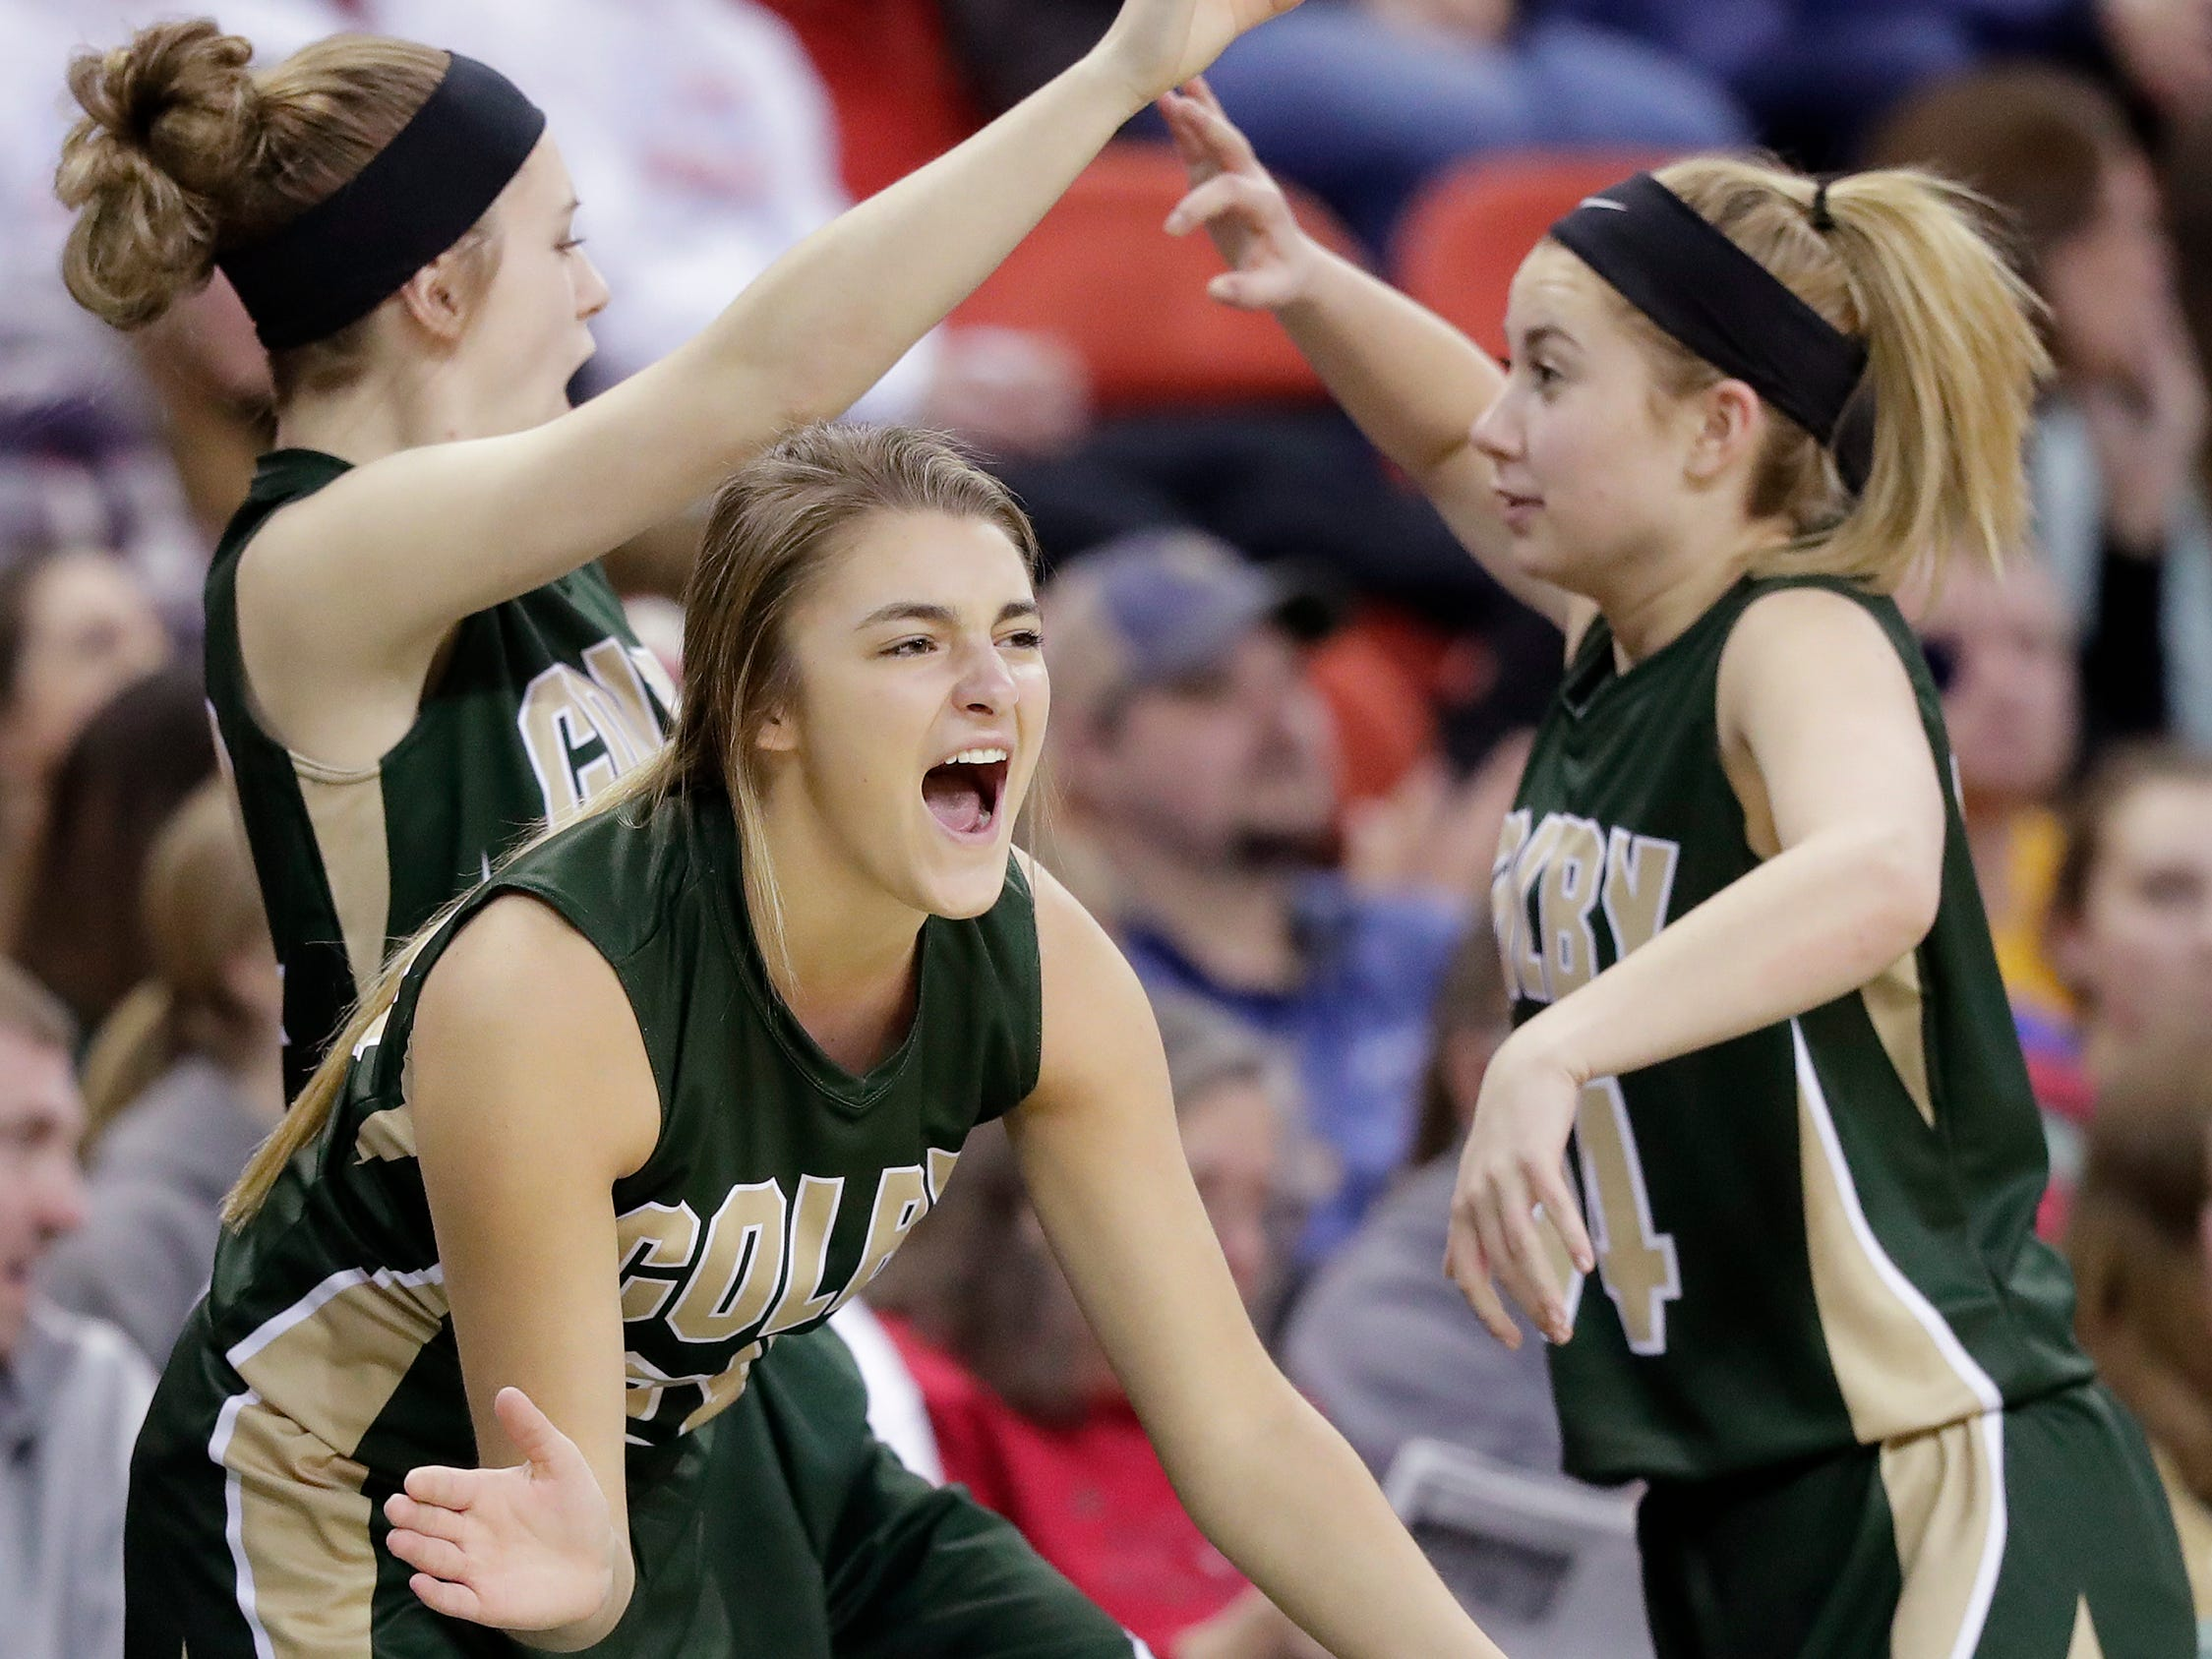 Colby players celebrate a three-point basket against Melrose-Mindoro in a Division 3 semifinal at the WIAA state girls basketball tournament at the Resch Center on Thursday, March 7, 2019, in Ashwaubenon, Wis.